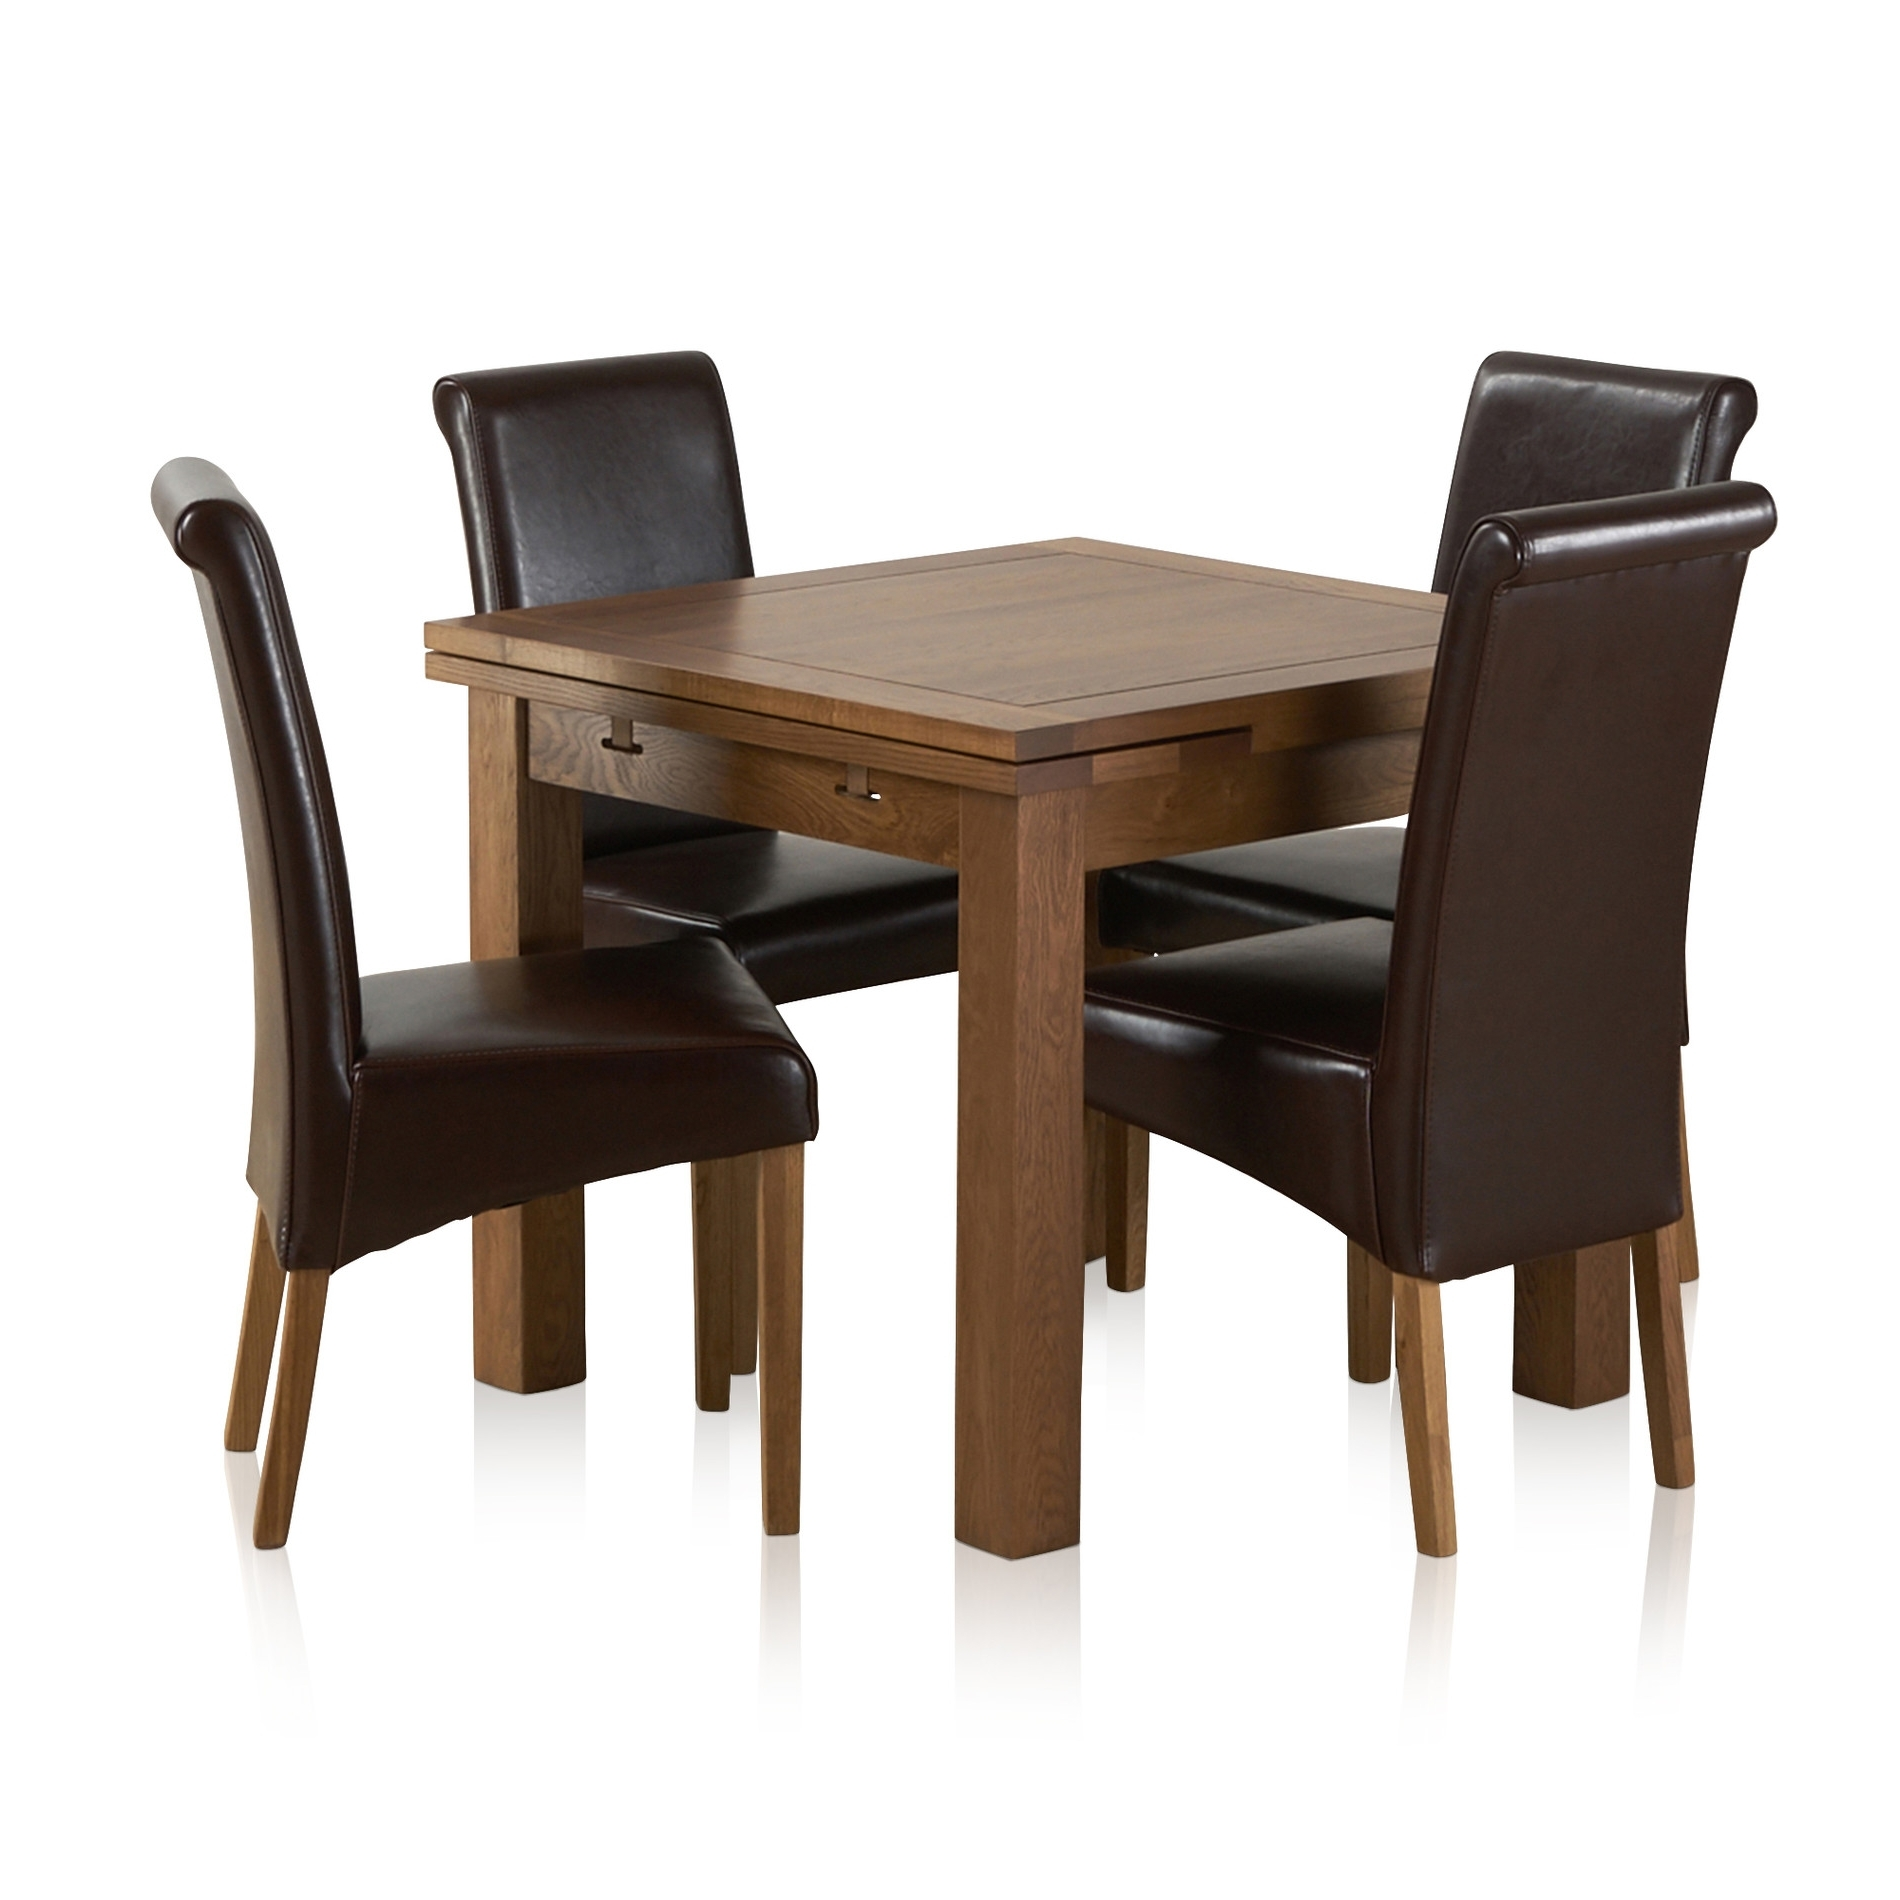 Rustic Oak Extending Dining Set – 3Ft Table + 4 Leather Chairs With Regard To Well Known Oak Extending Dining Tables And 4 Chairs (View 11 of 25)